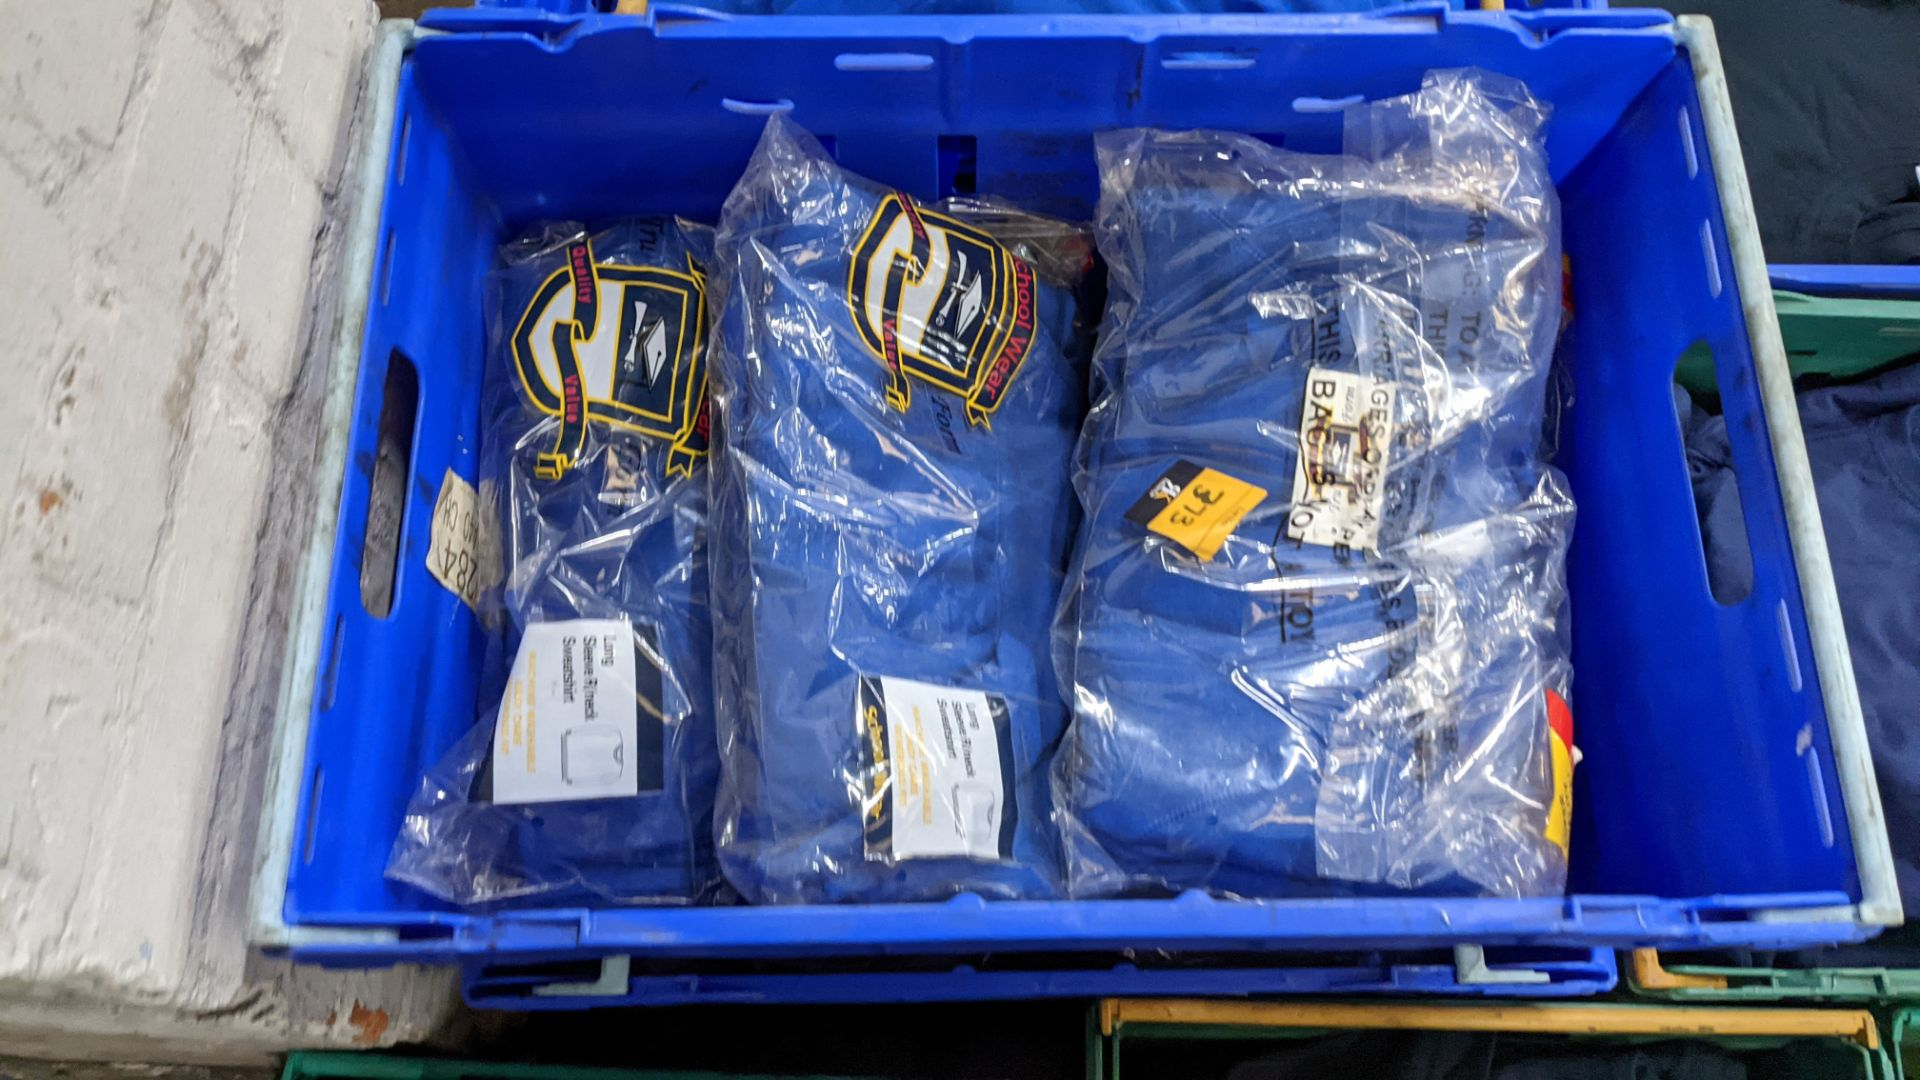 Approx 29 off royal blue children's sweatshirts (2 crates) - Image 3 of 4